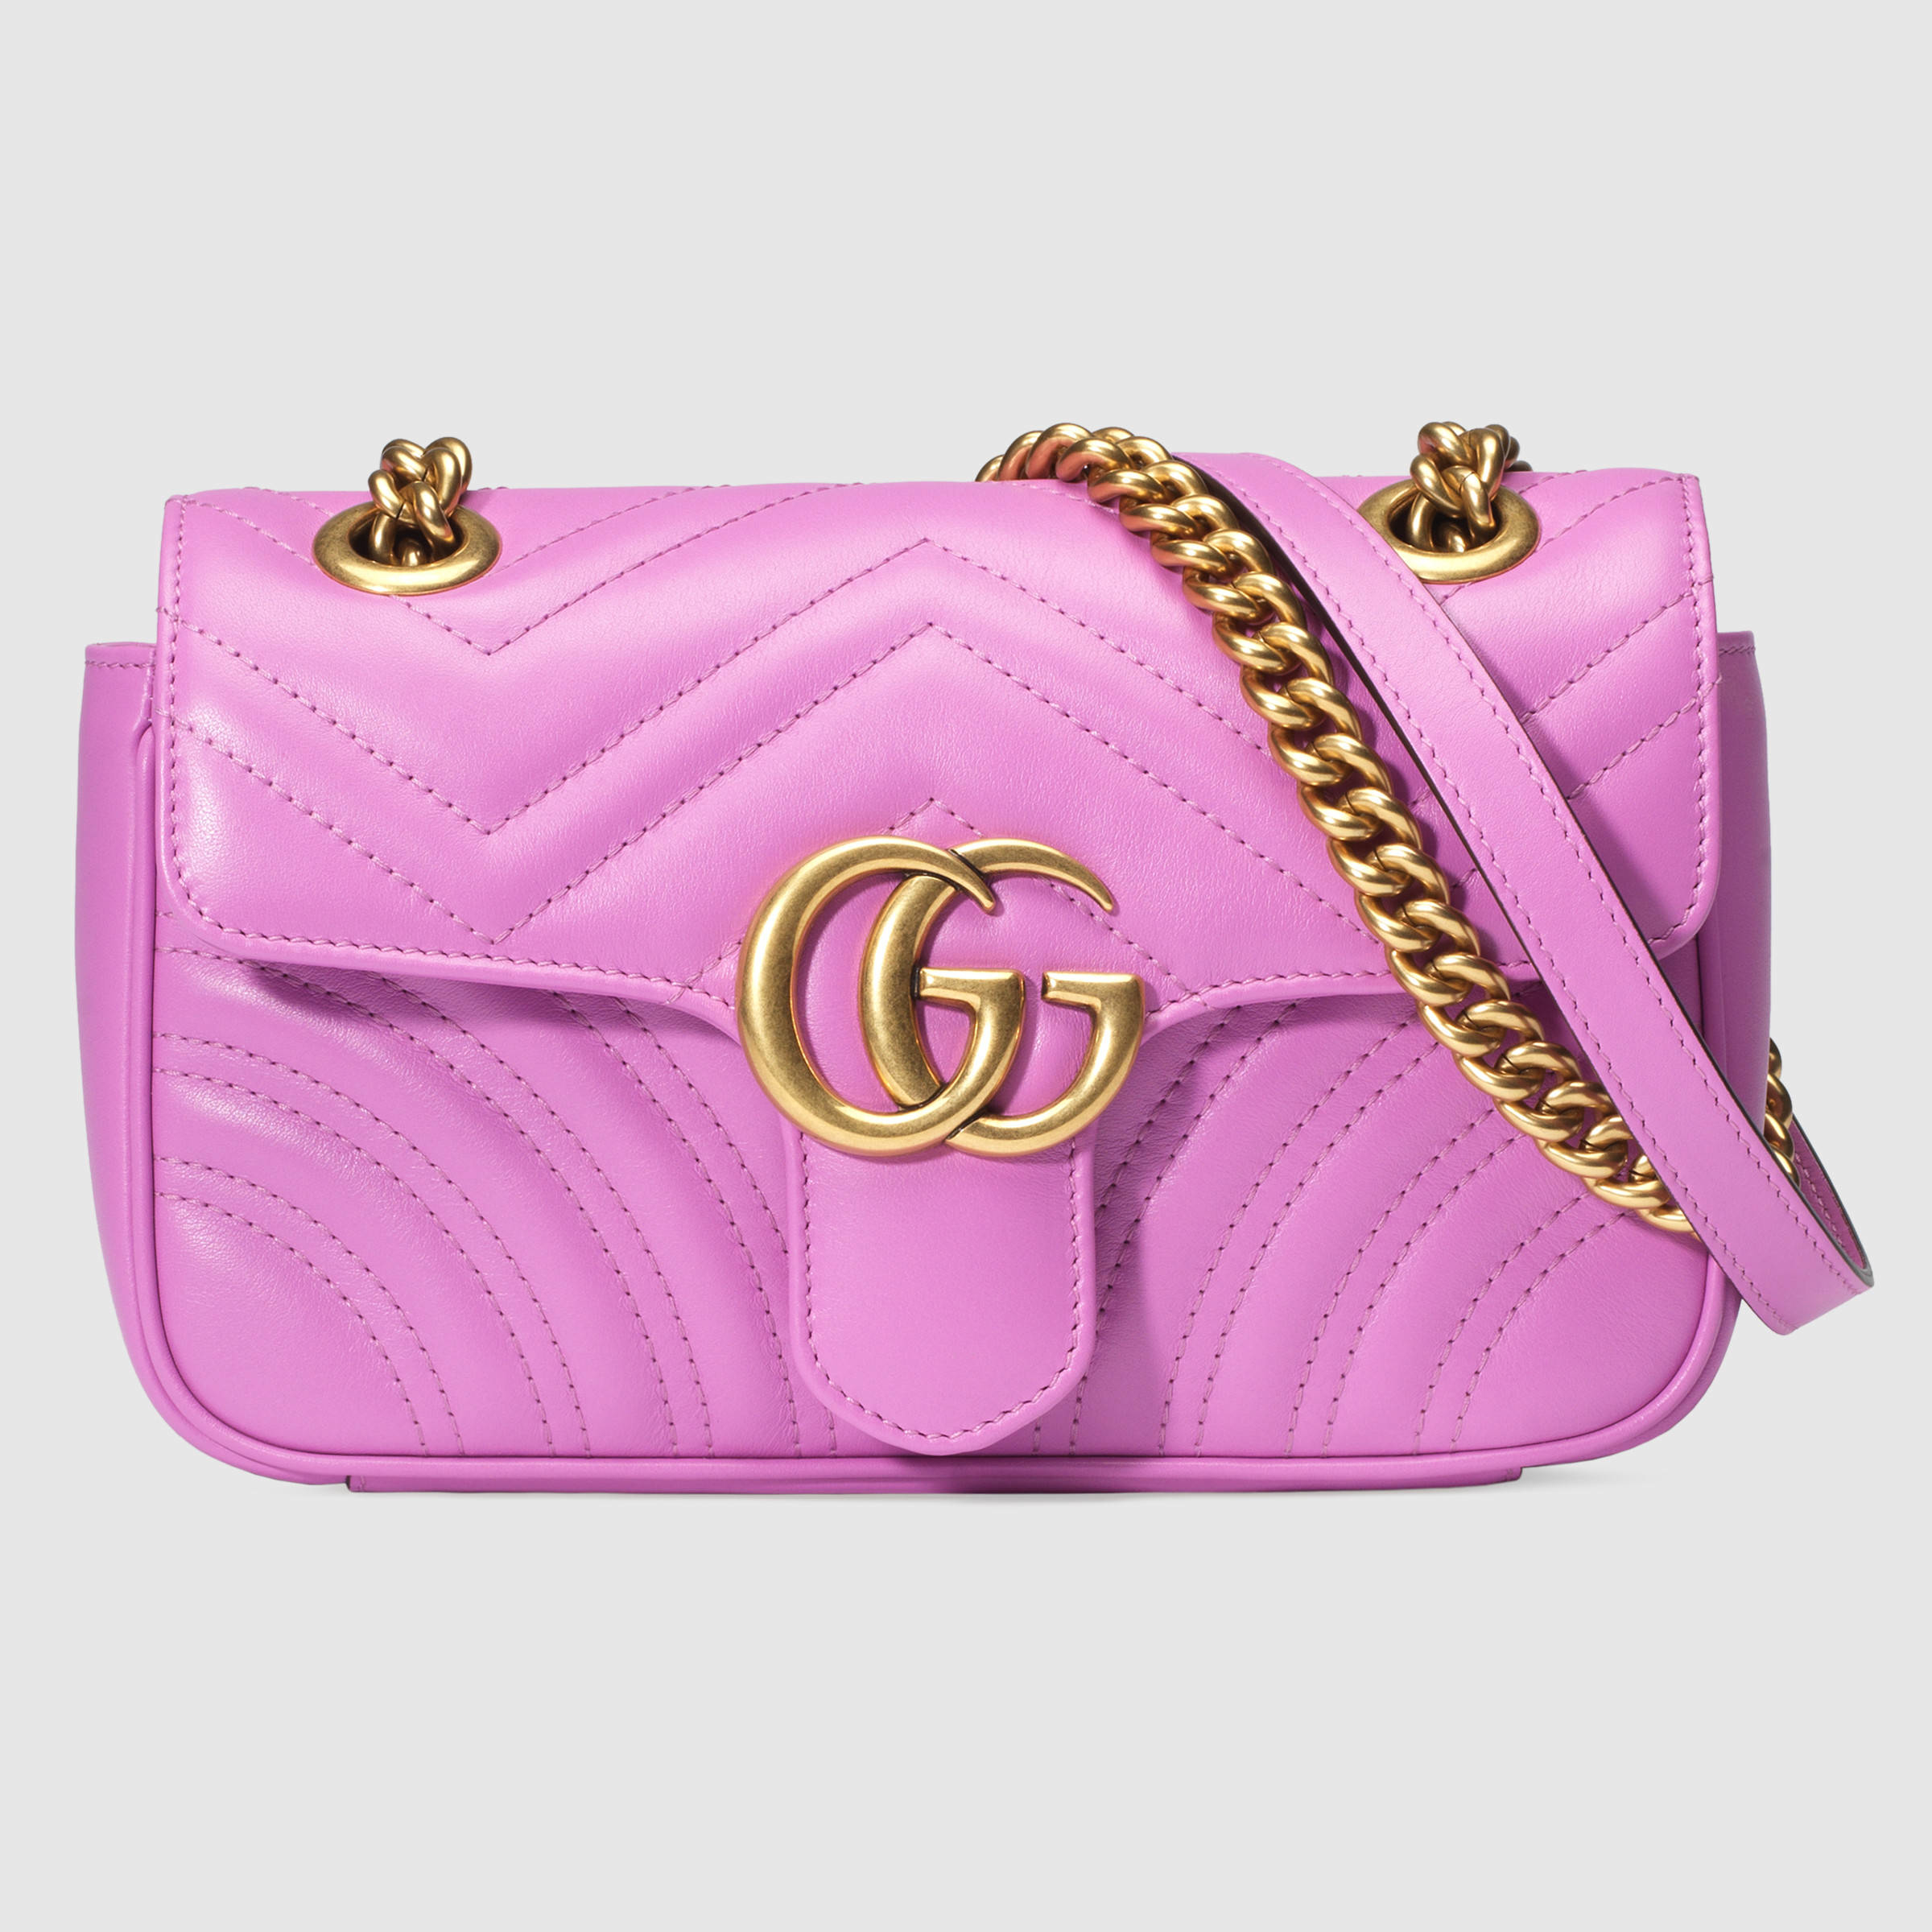 a032365eae61 Gucci GG Marmont Matelassé Leather Mini Shoulder Bag - Lyst